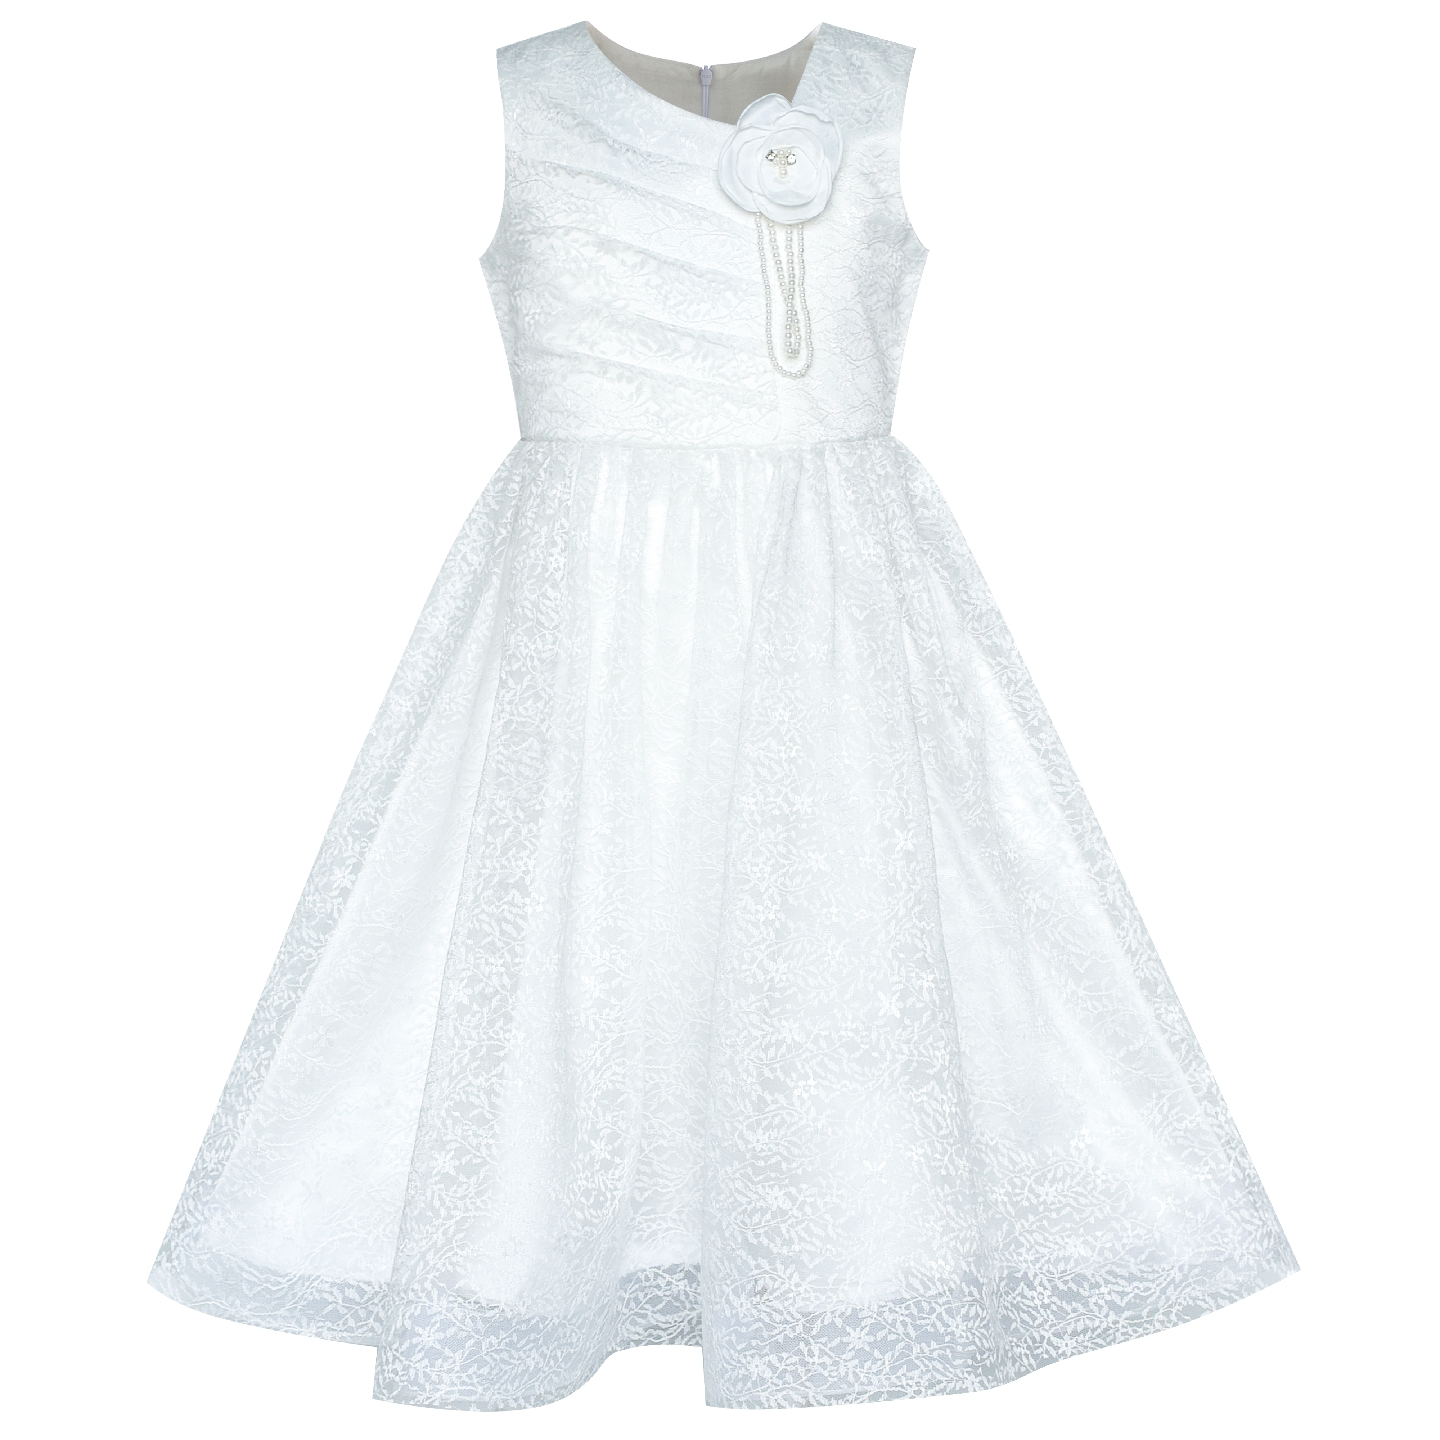 Flower Girl Dress Off White Lace First Communion Wedding Bridesmaid 2019 Summer Princess Party Dresses Children Clothes Pageant flower girl dress lace sequin v neckline pageant wedding 2017 summer princess party dresses children clothes size 4 14 sundress